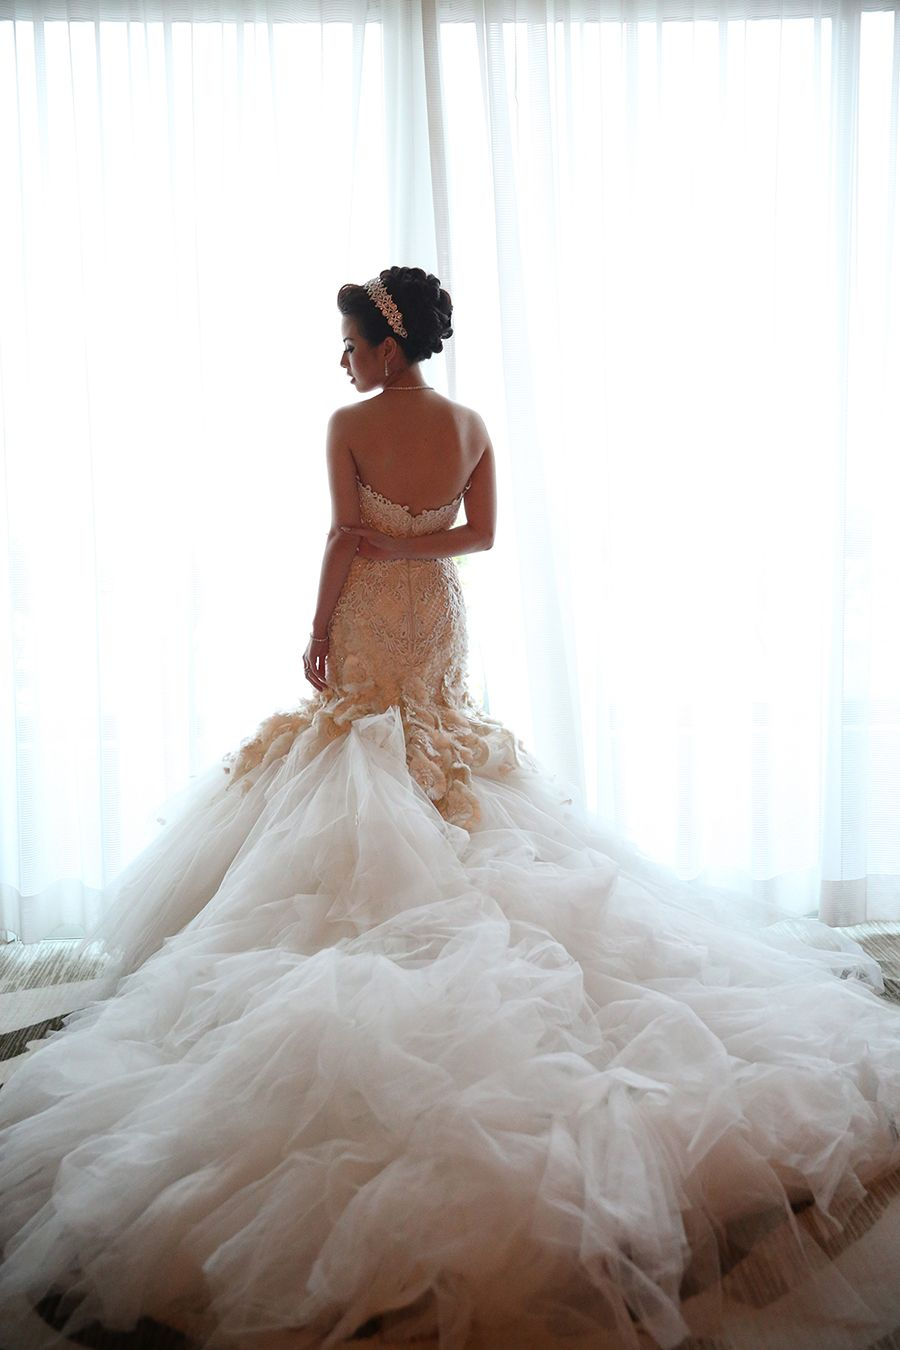 Embroidered Couture Wedding Gown By Indonesian Designer Hian Tjen Royal Indulgence Anthony And